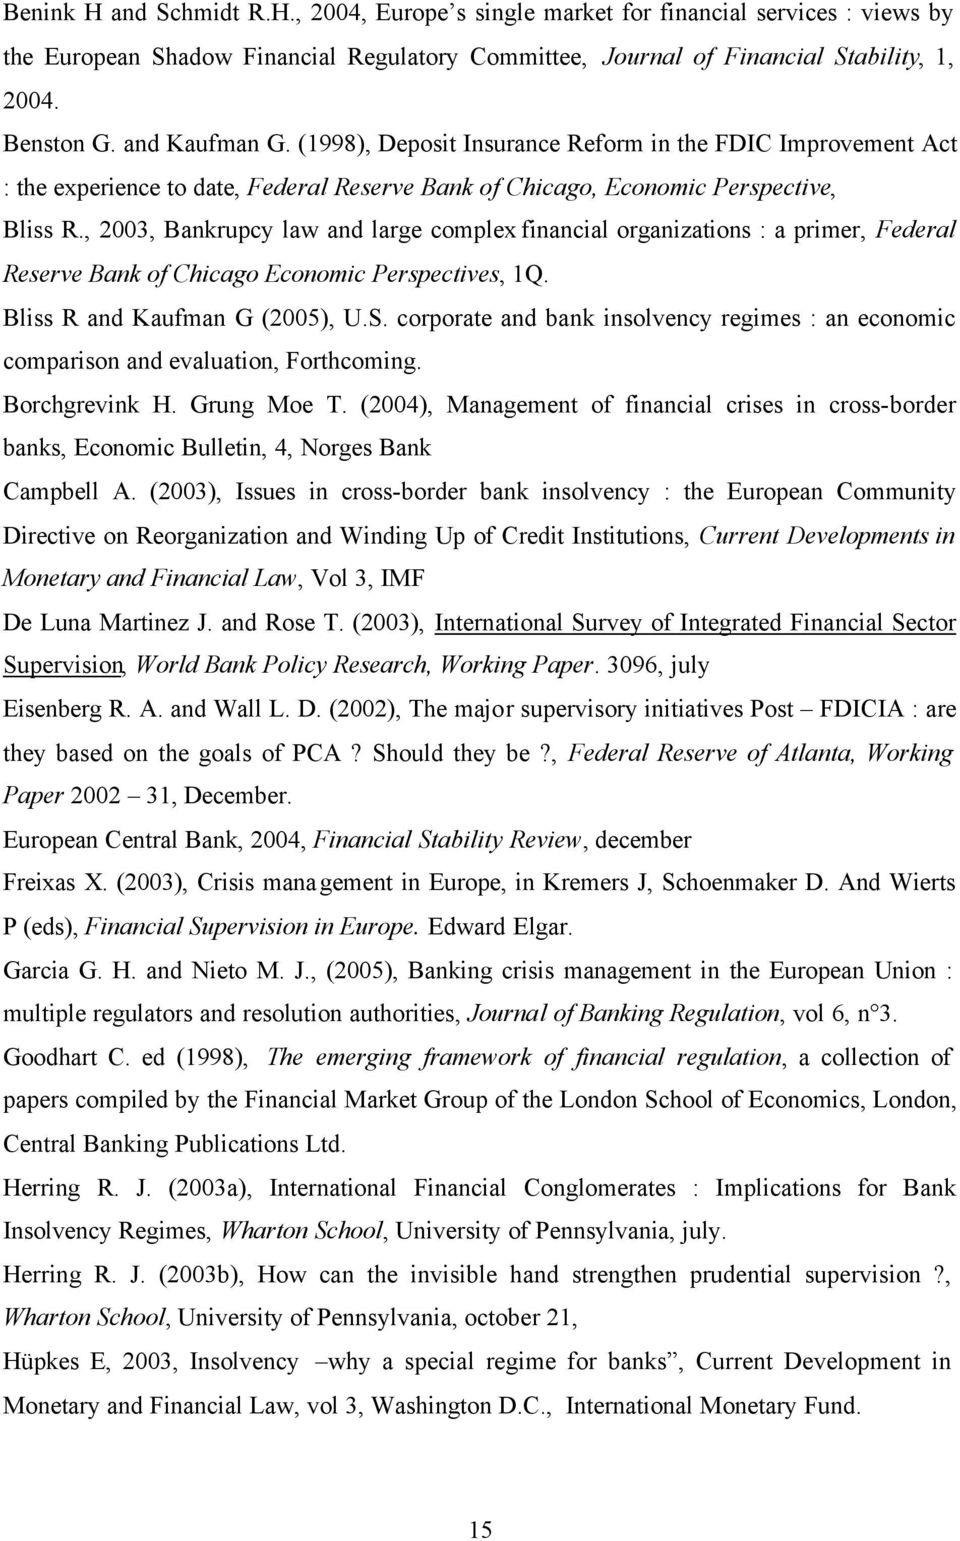 , 2003, Bankrupcy law and large complex financial organizations : a primer, Federal Reserve Bank of Chicago Economic Perspectives, 1Q. Bliss R and Kaufman G (2005), U.S.